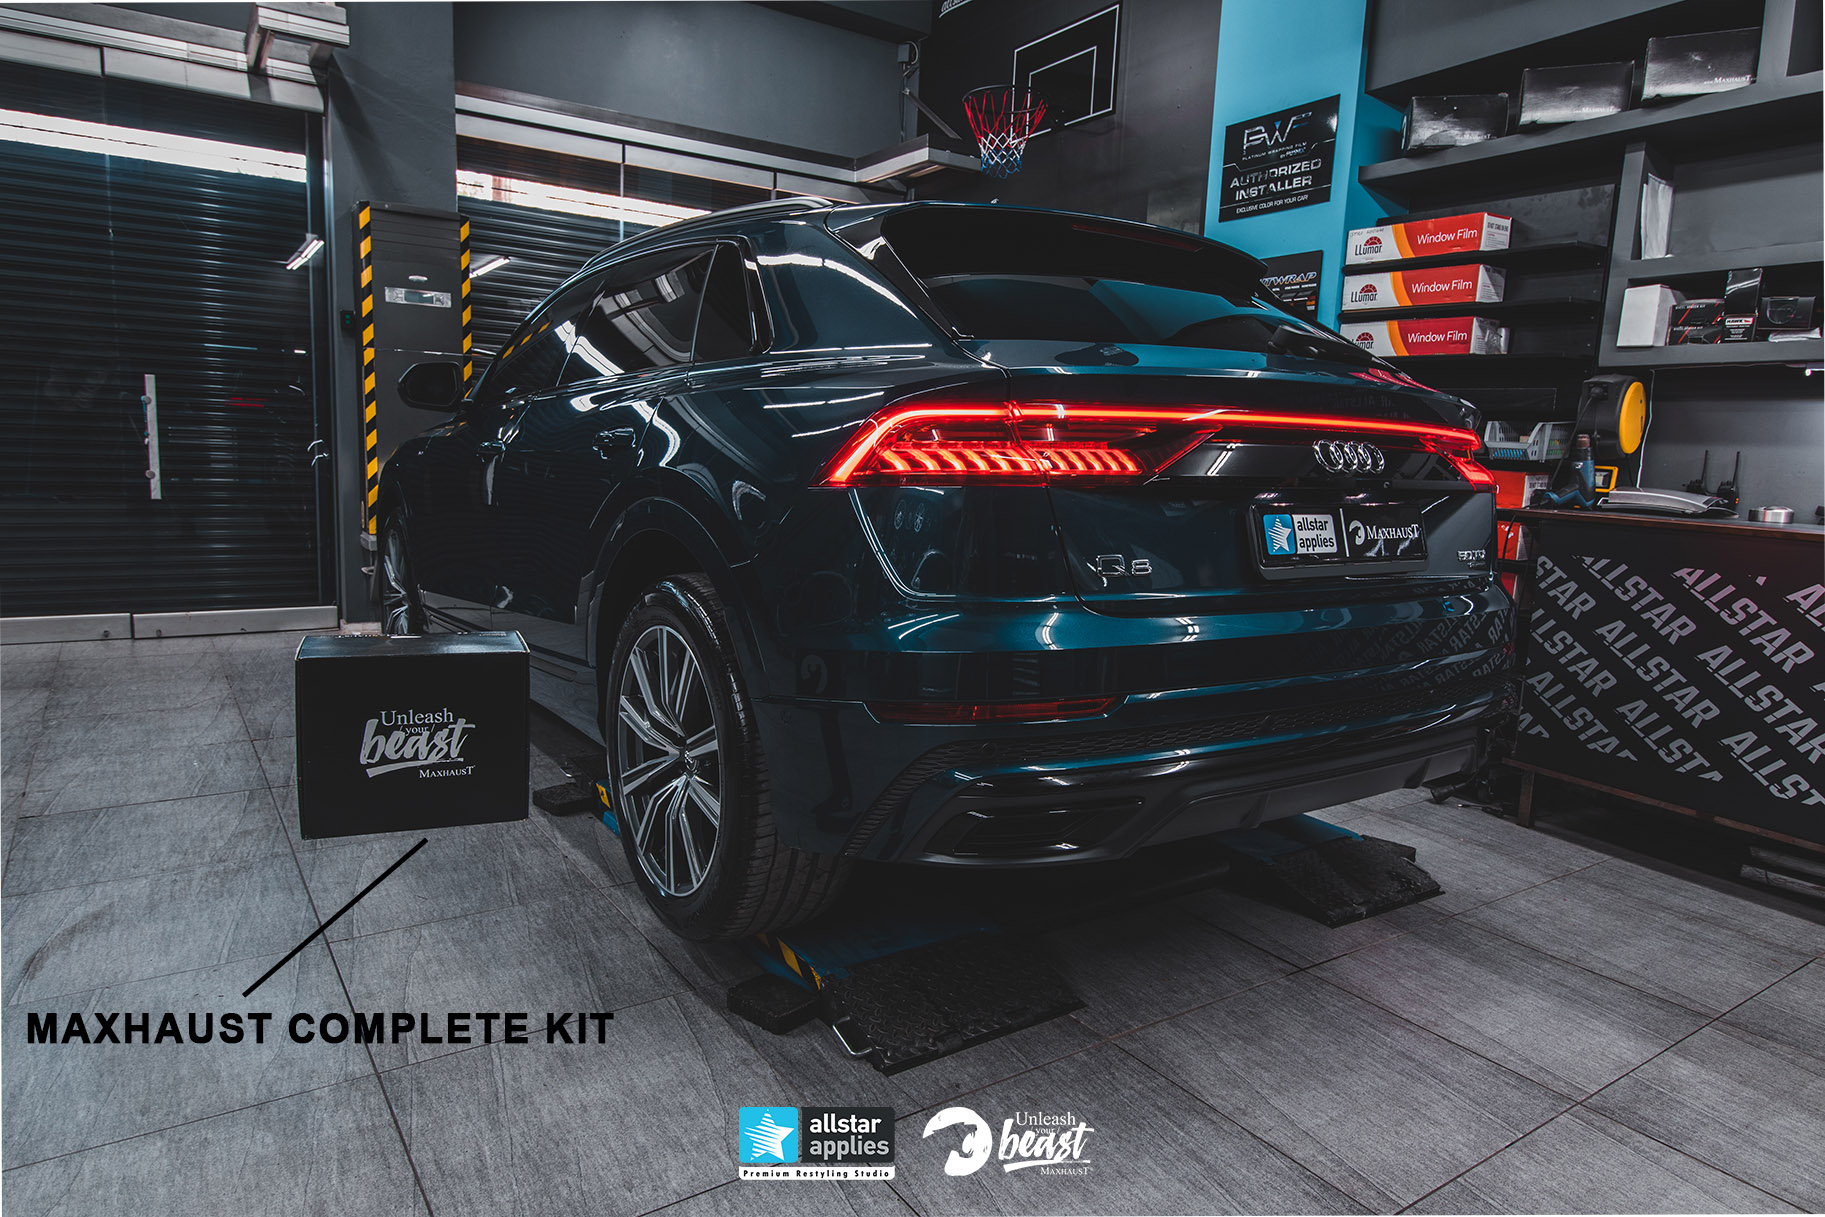 AUDI Q8 MAXHAUST ALLSTAR APPLIES (1)